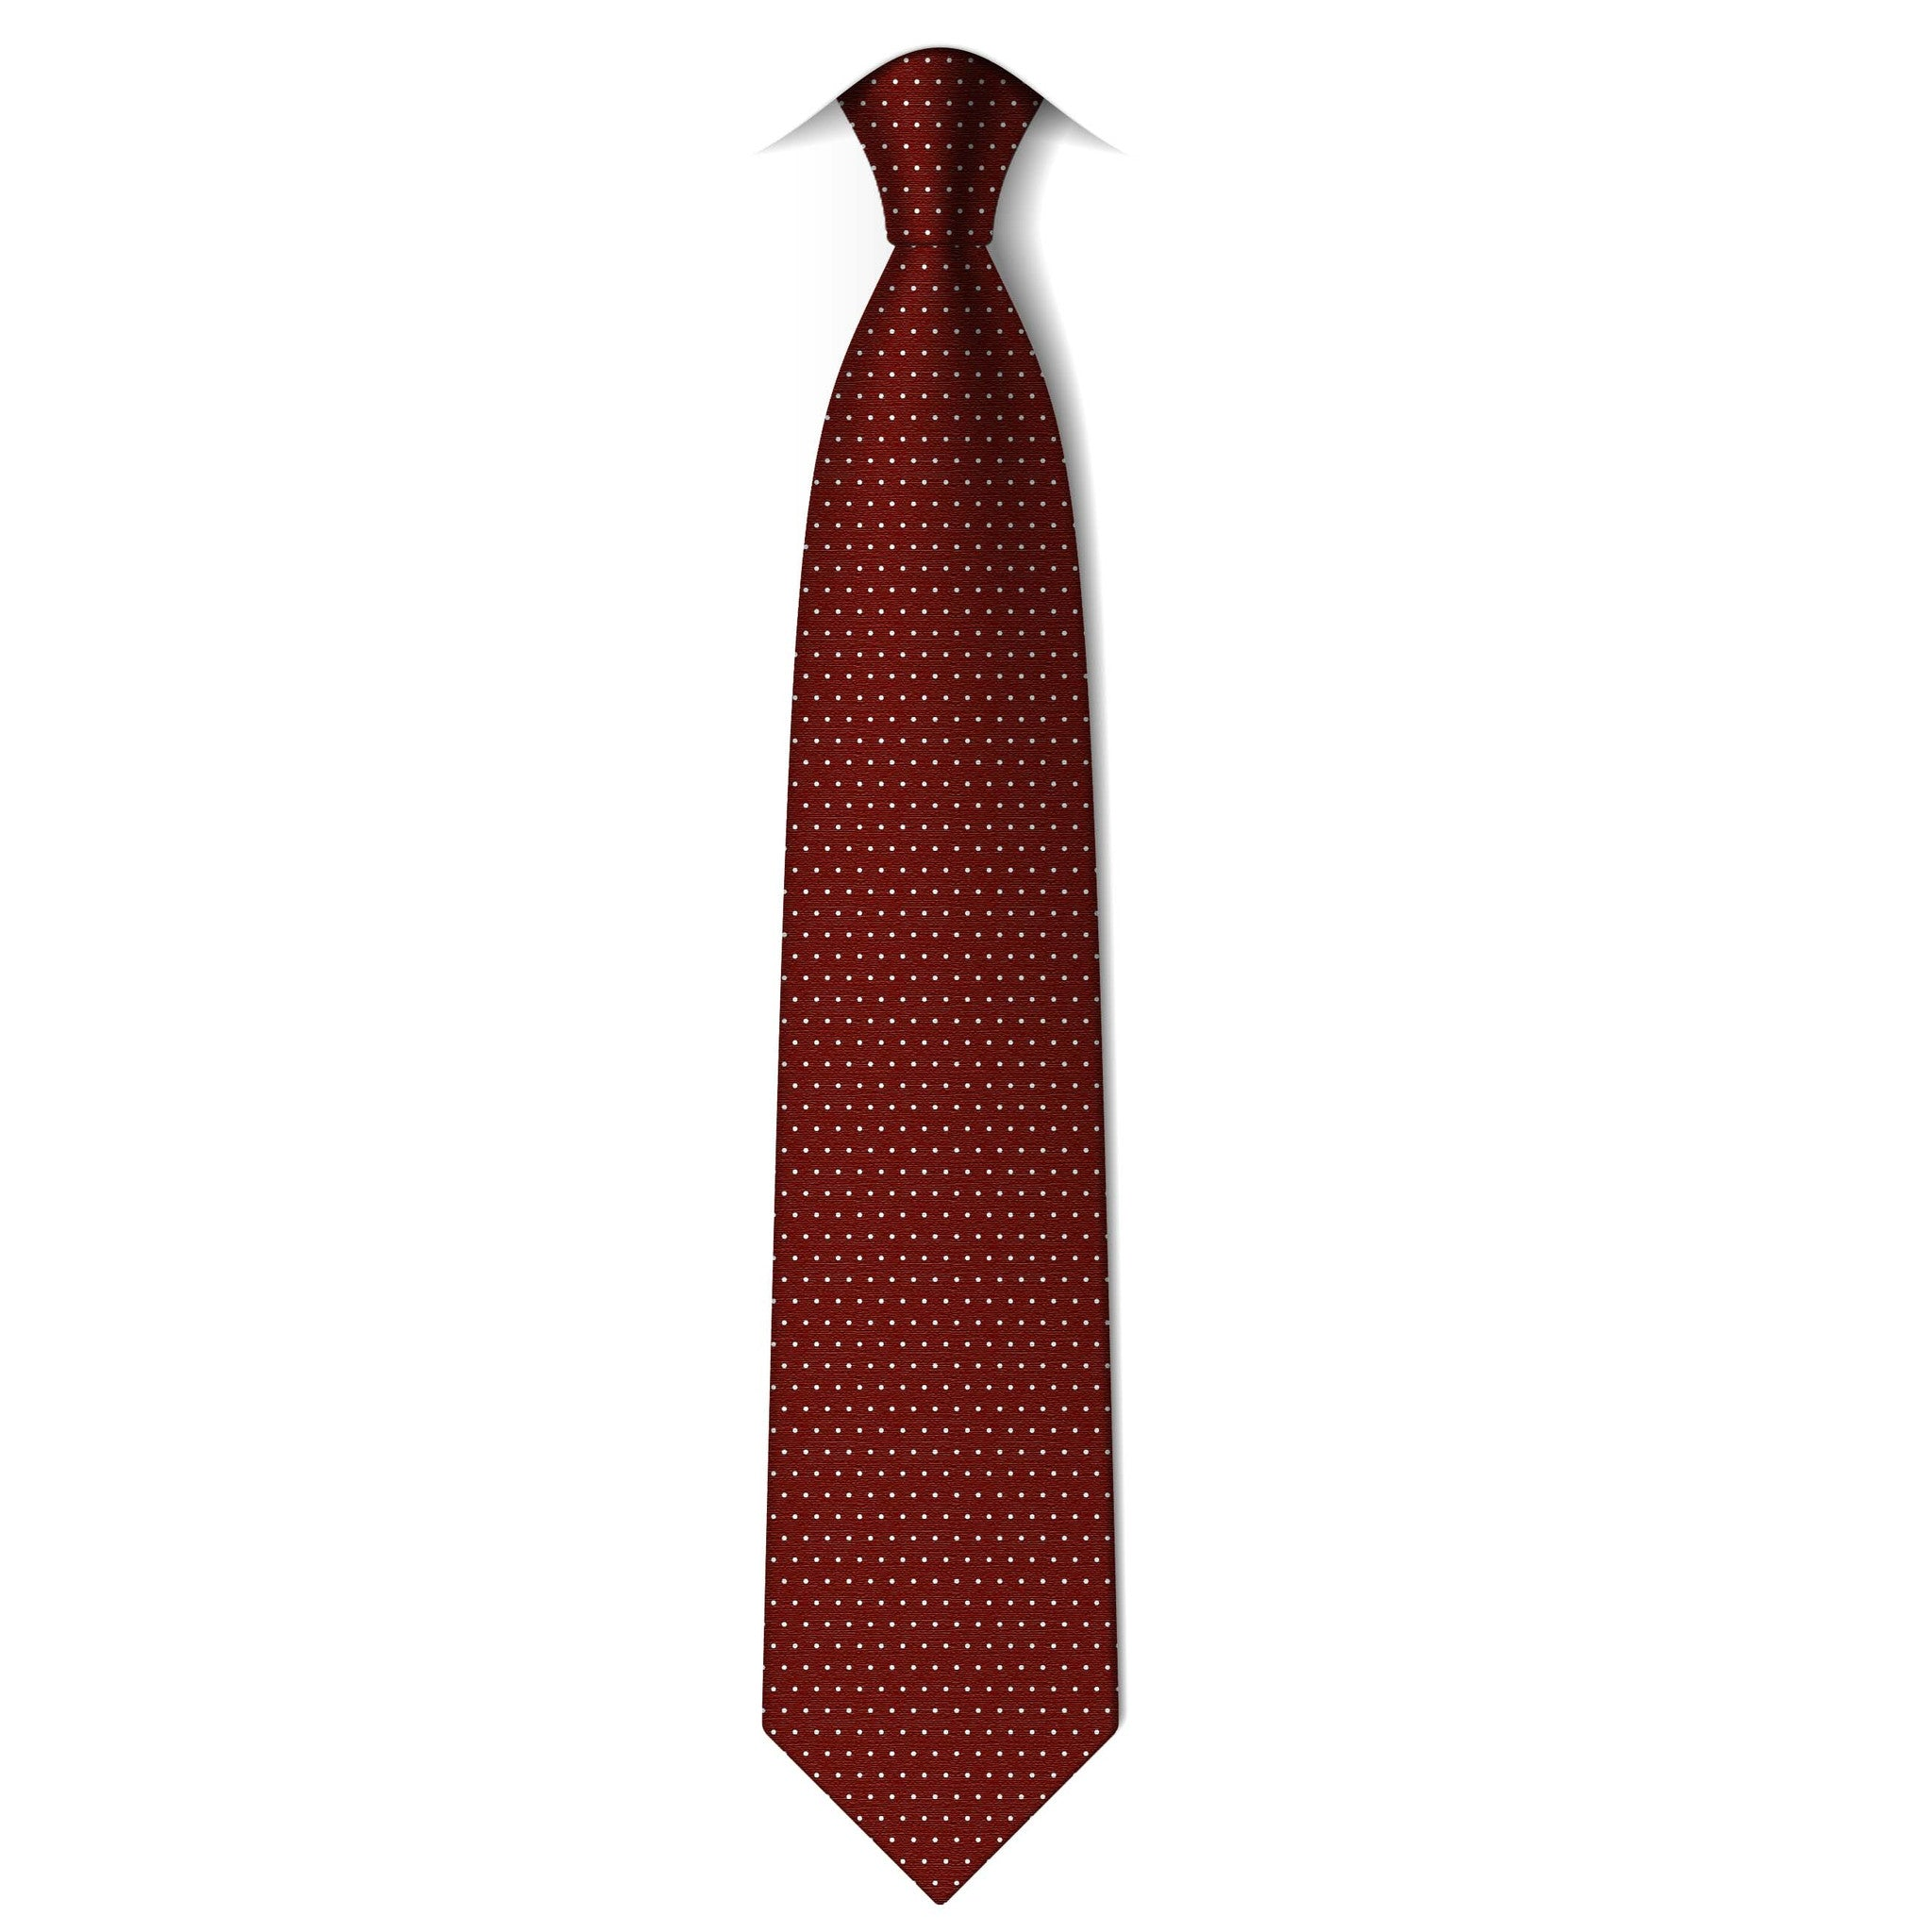 100% Pure Silk Luxury Tie for Men